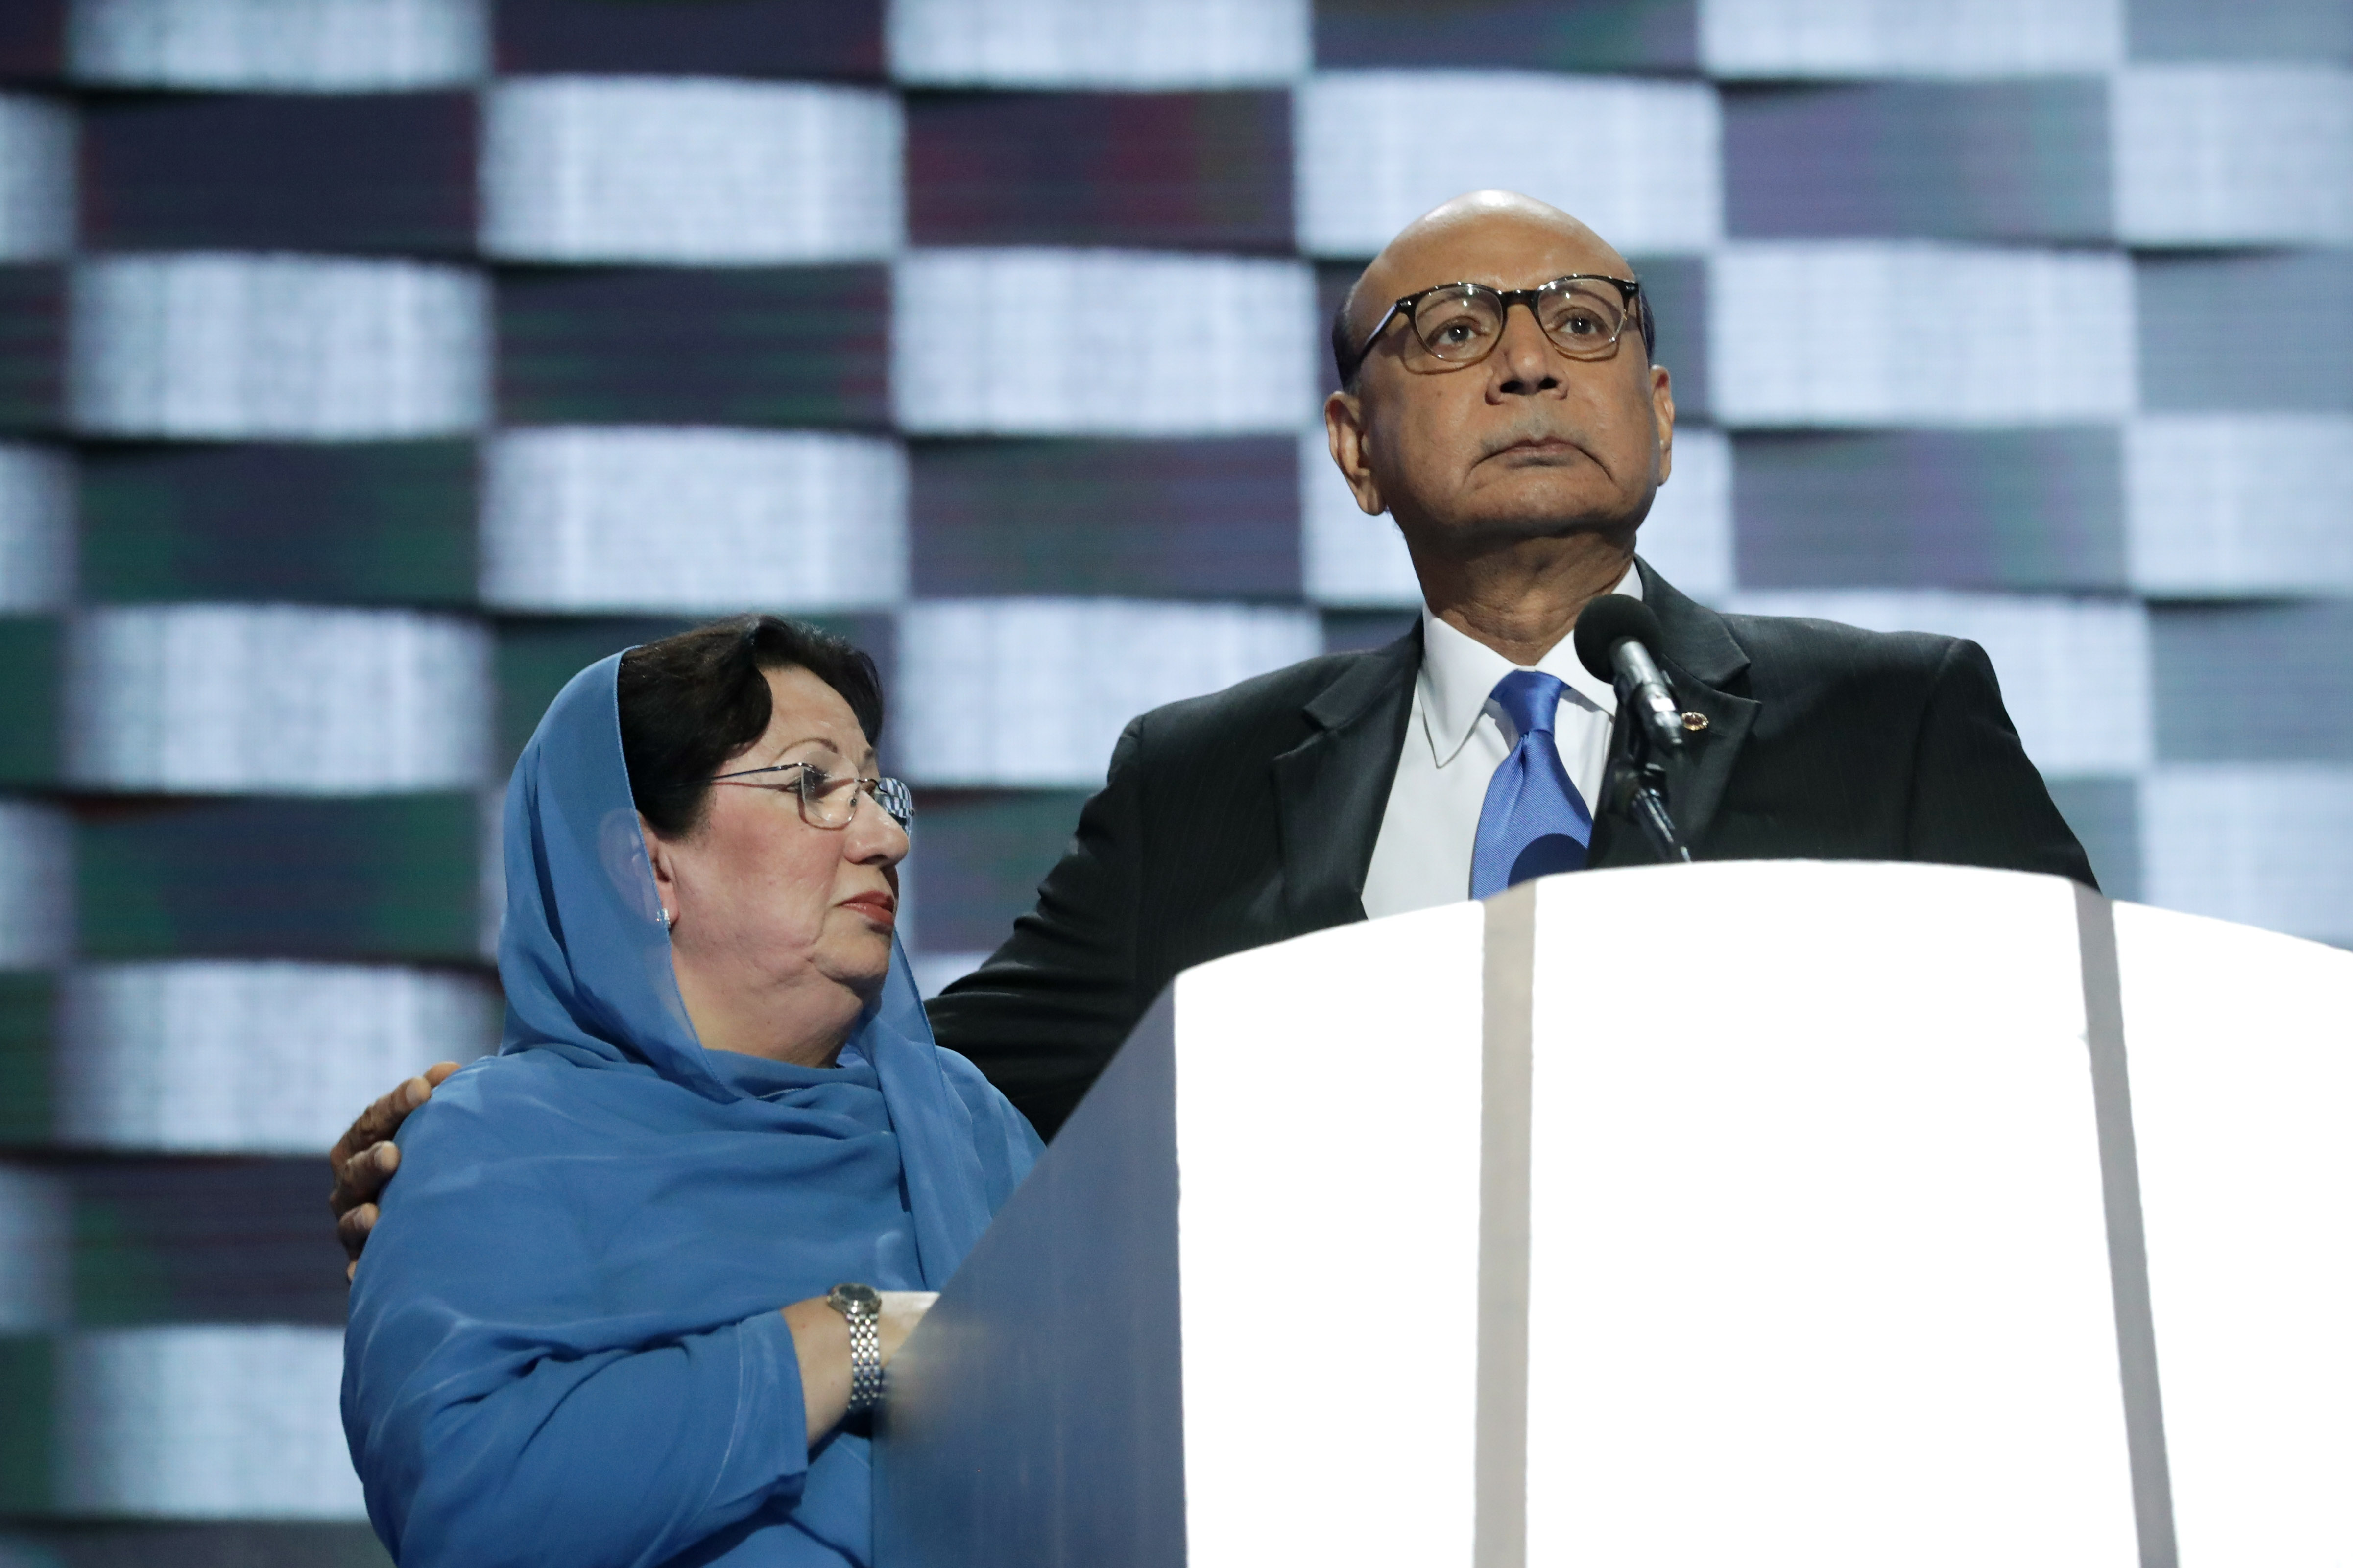 Khizr Khan, father of deceased U.S. Army Capt. Humayun Khan, delivers remarks as he is joined by his wife Ghazala Khan at the Democratic National Convention on July 28, 2016.